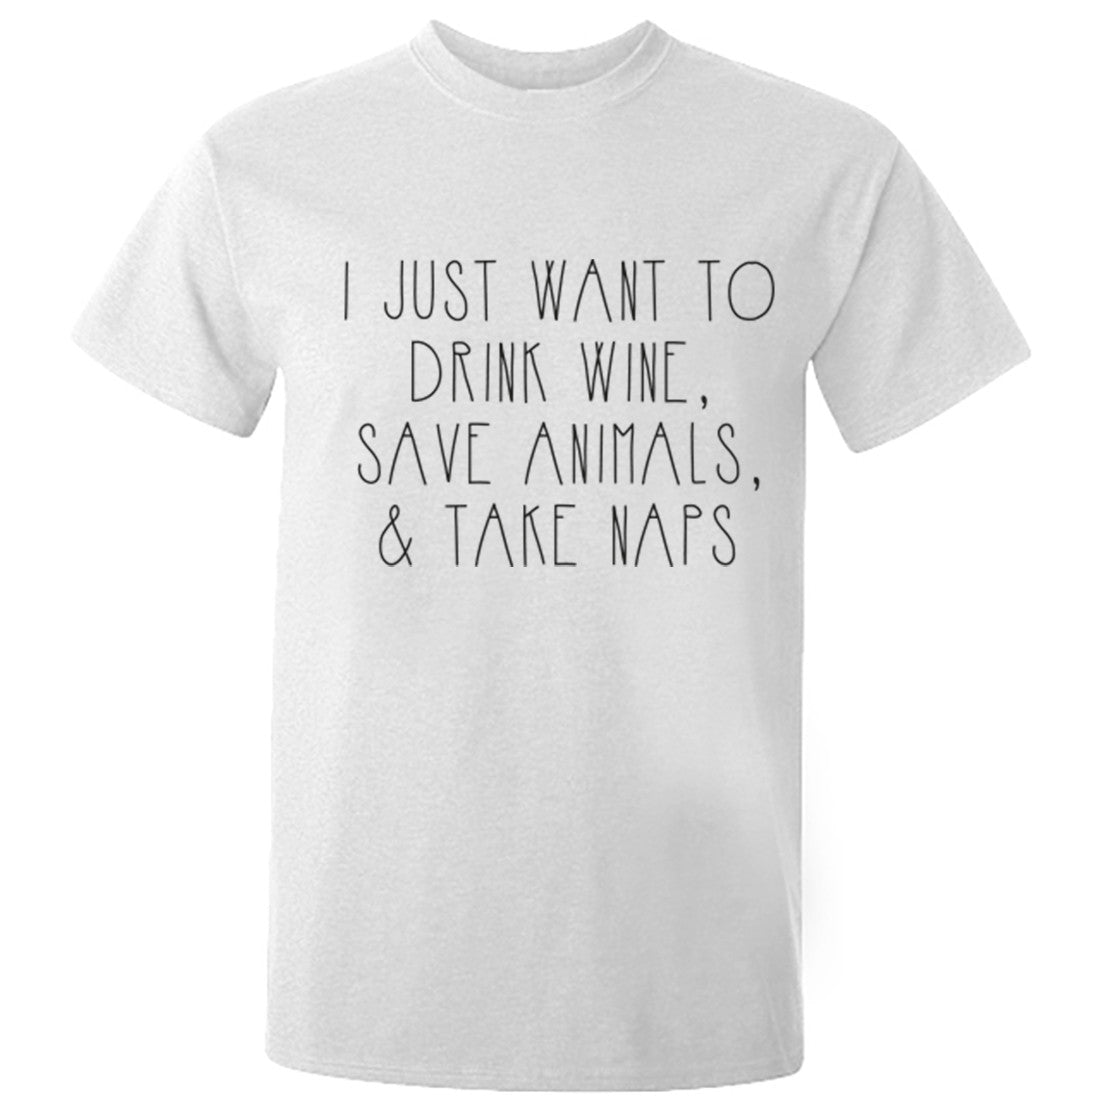 I just want to drink wine save animals and take naps unisex t-shirt K0186